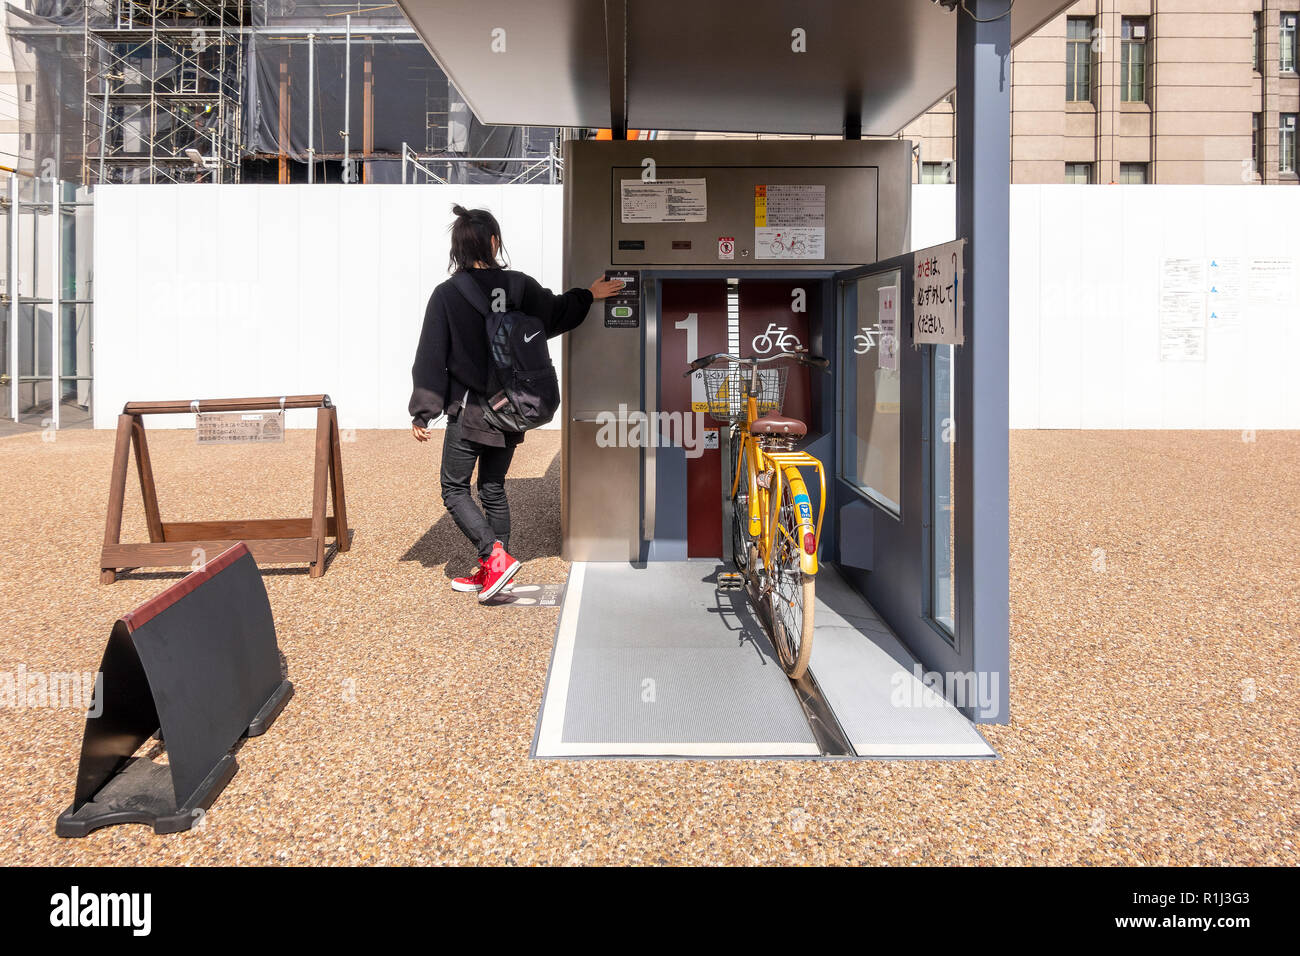 https://c7.alamy.com/comp/R1J3G3/girl-parking-her-bike-in-a-giken-eco-cycle-automated-underground-bicycle-parking-in-front-of-kyoto-city-hall-japan-series-of-3-images-R1J3G3.jpg